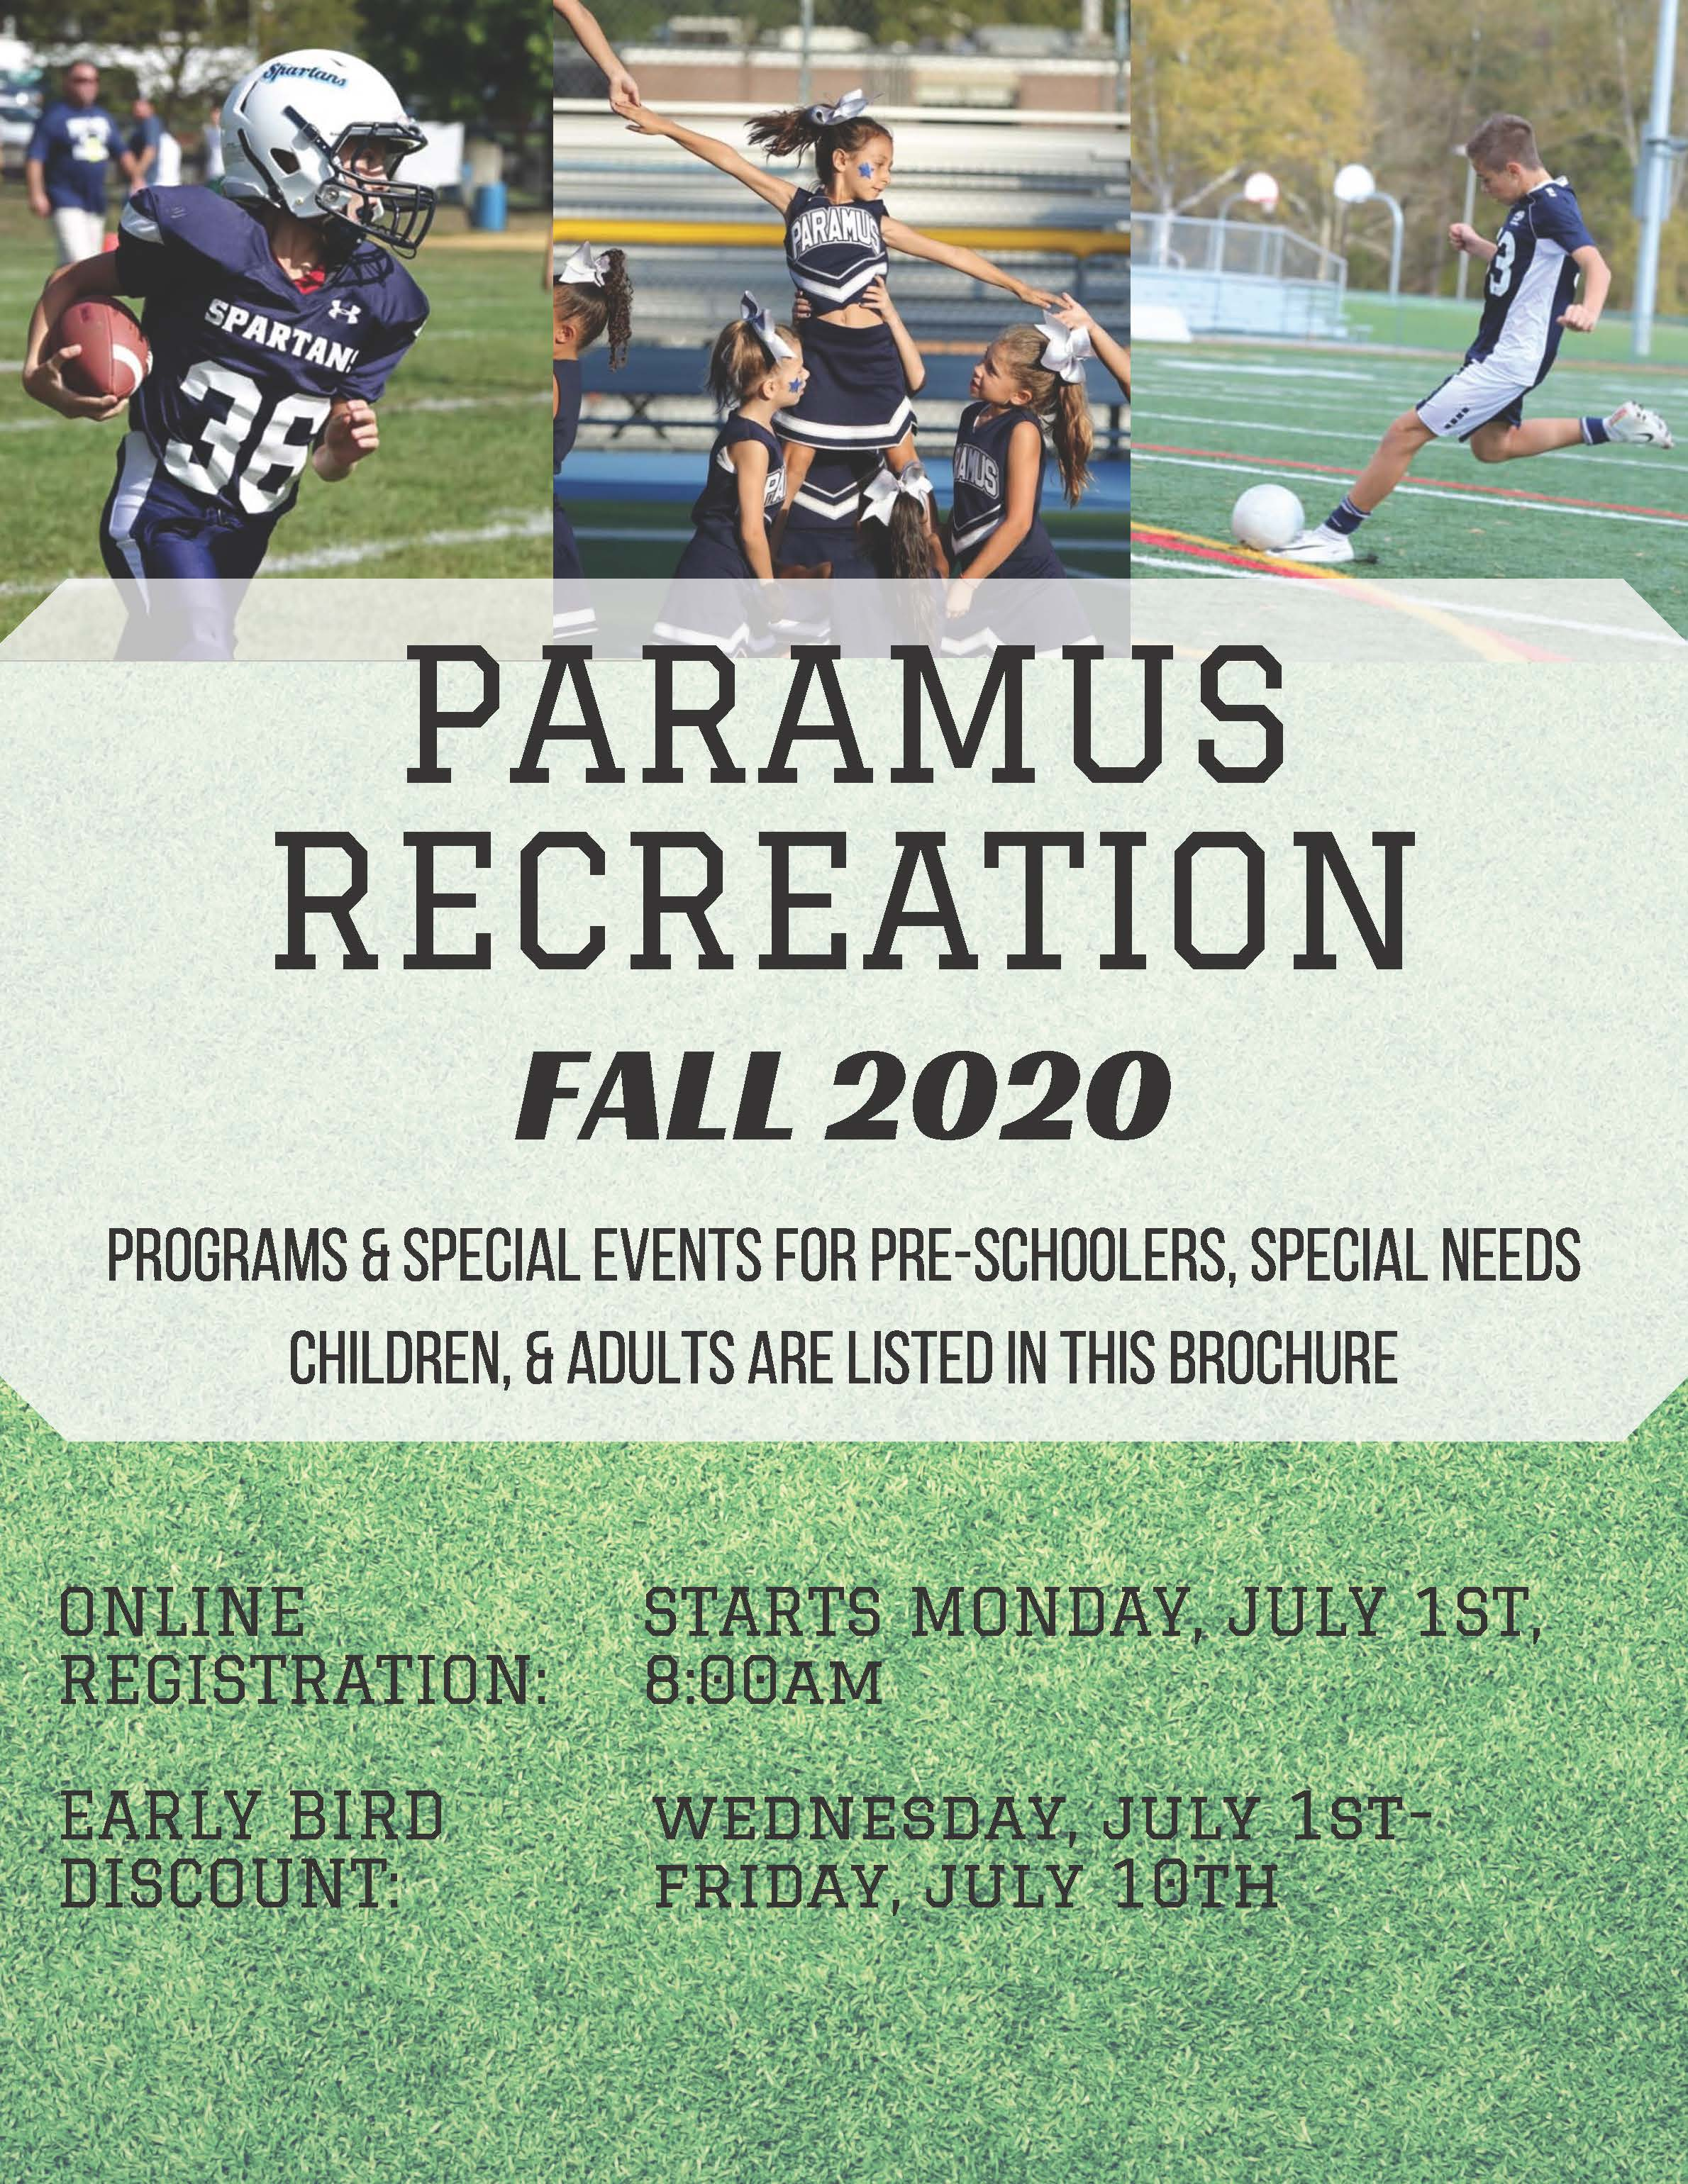 Paramus Rec Fall 2020 Brochure